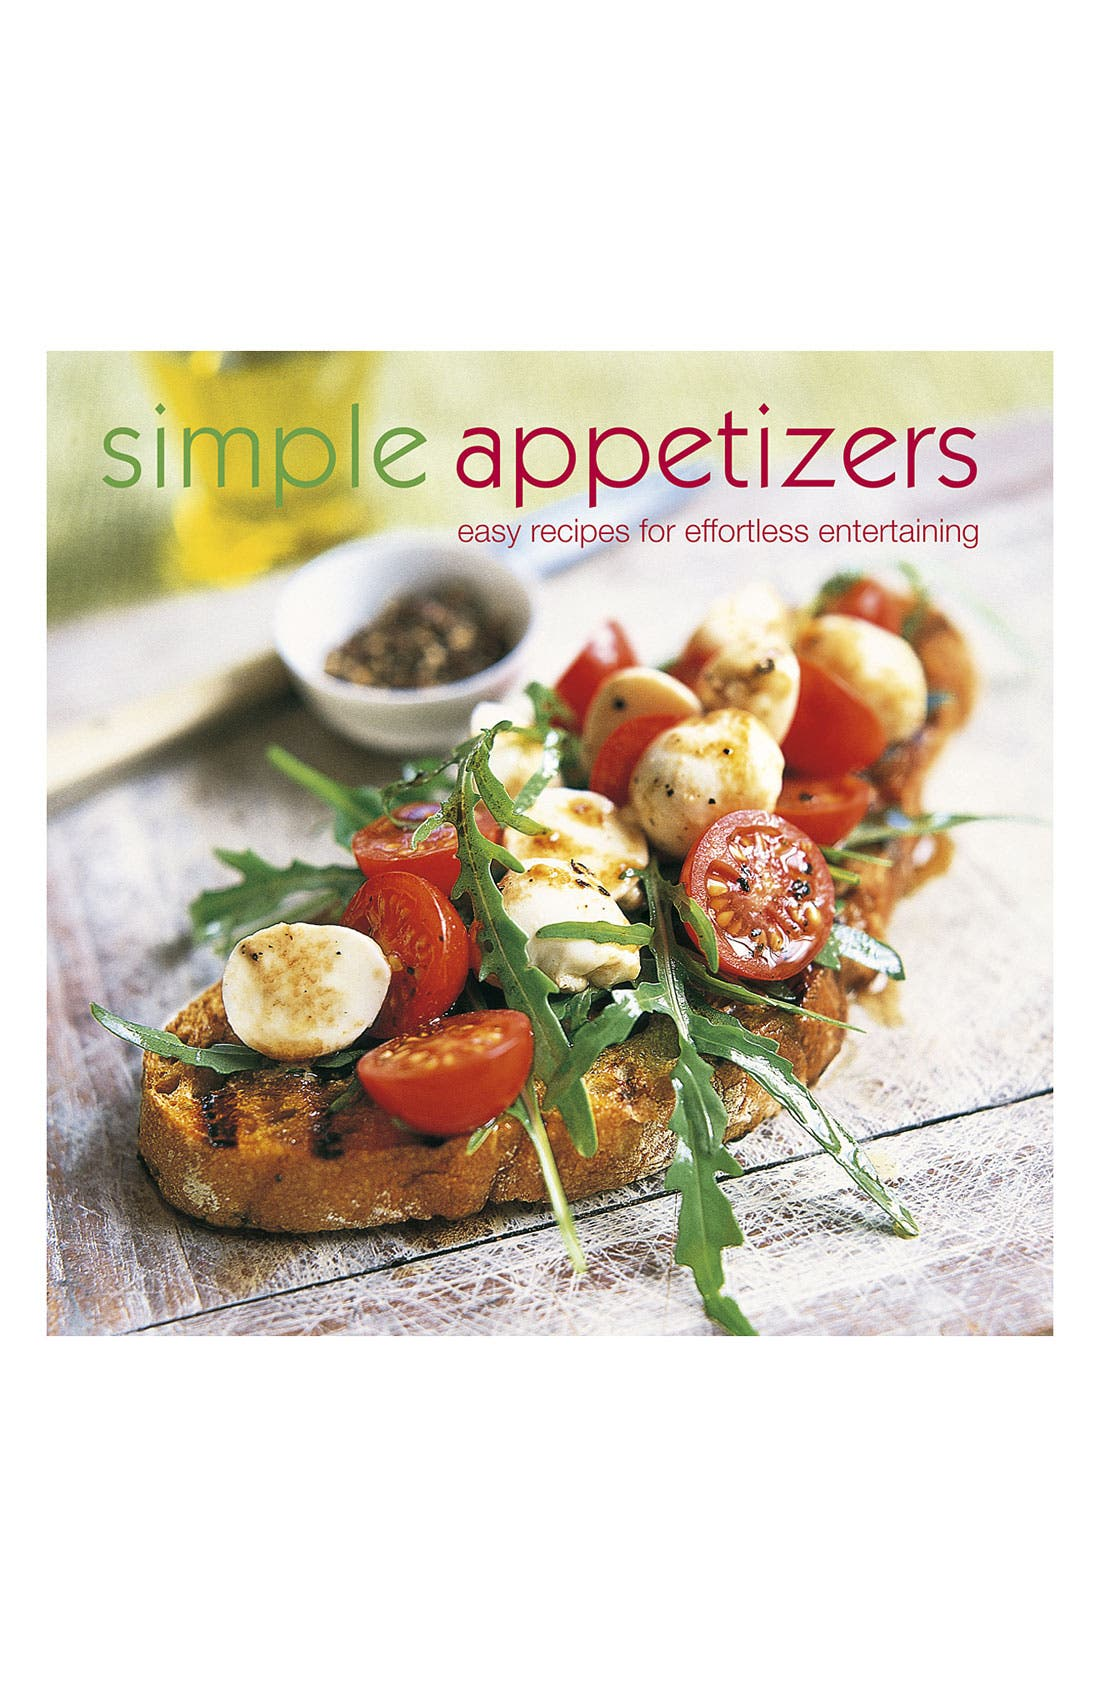 Alternate Image 1 Selected - 'Simple Appetizers' Cookbook